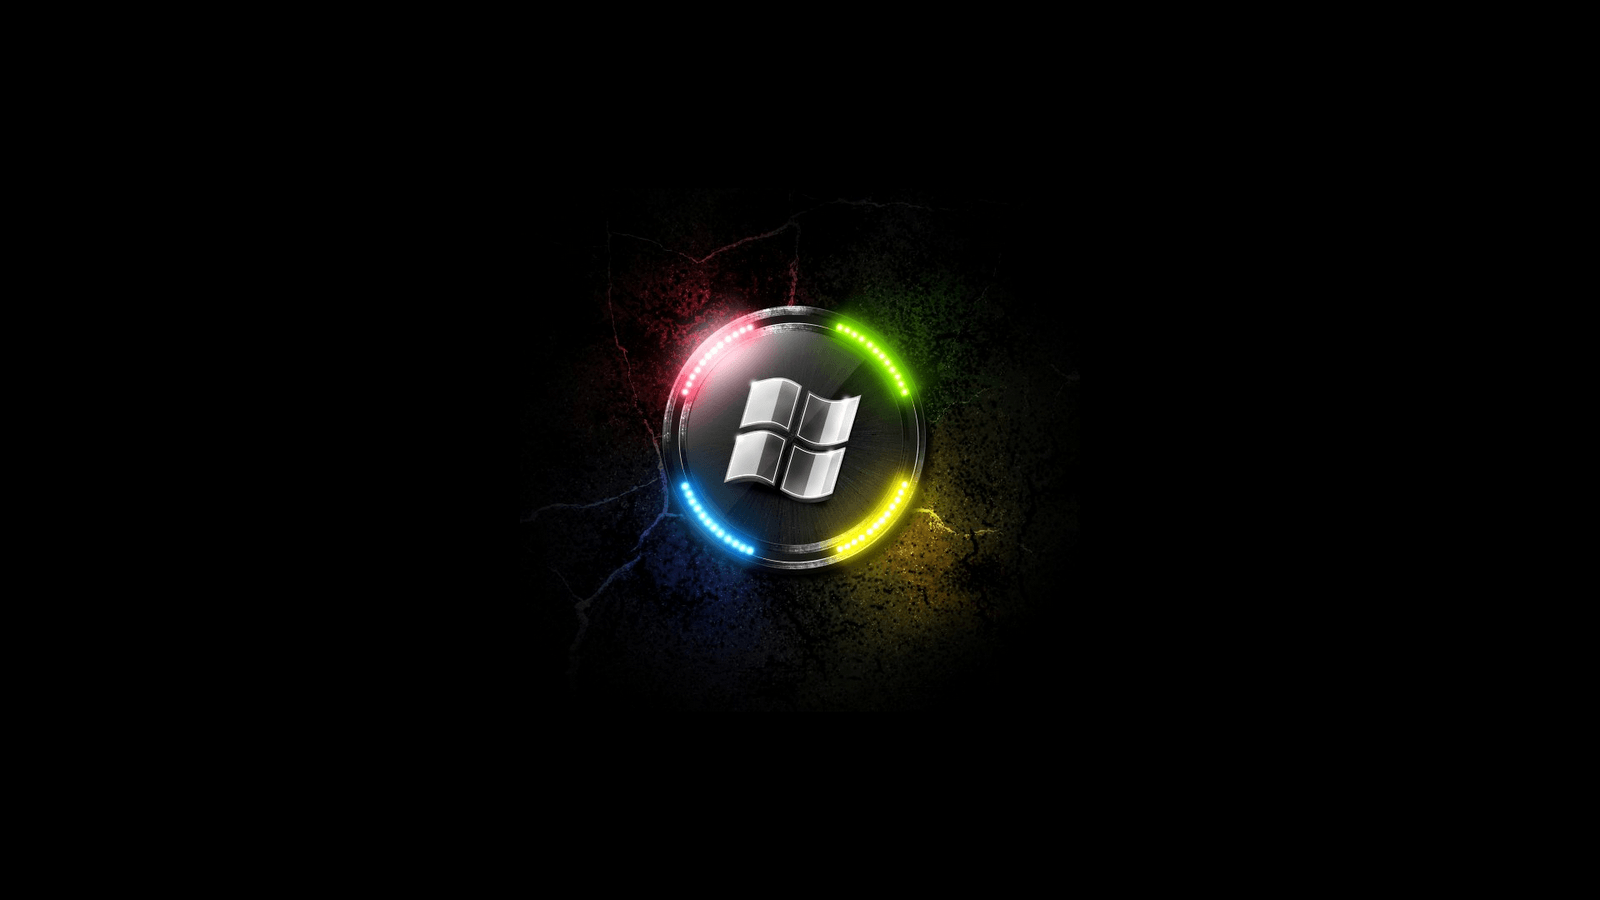 Cool Logo Wallpapers 1600x900